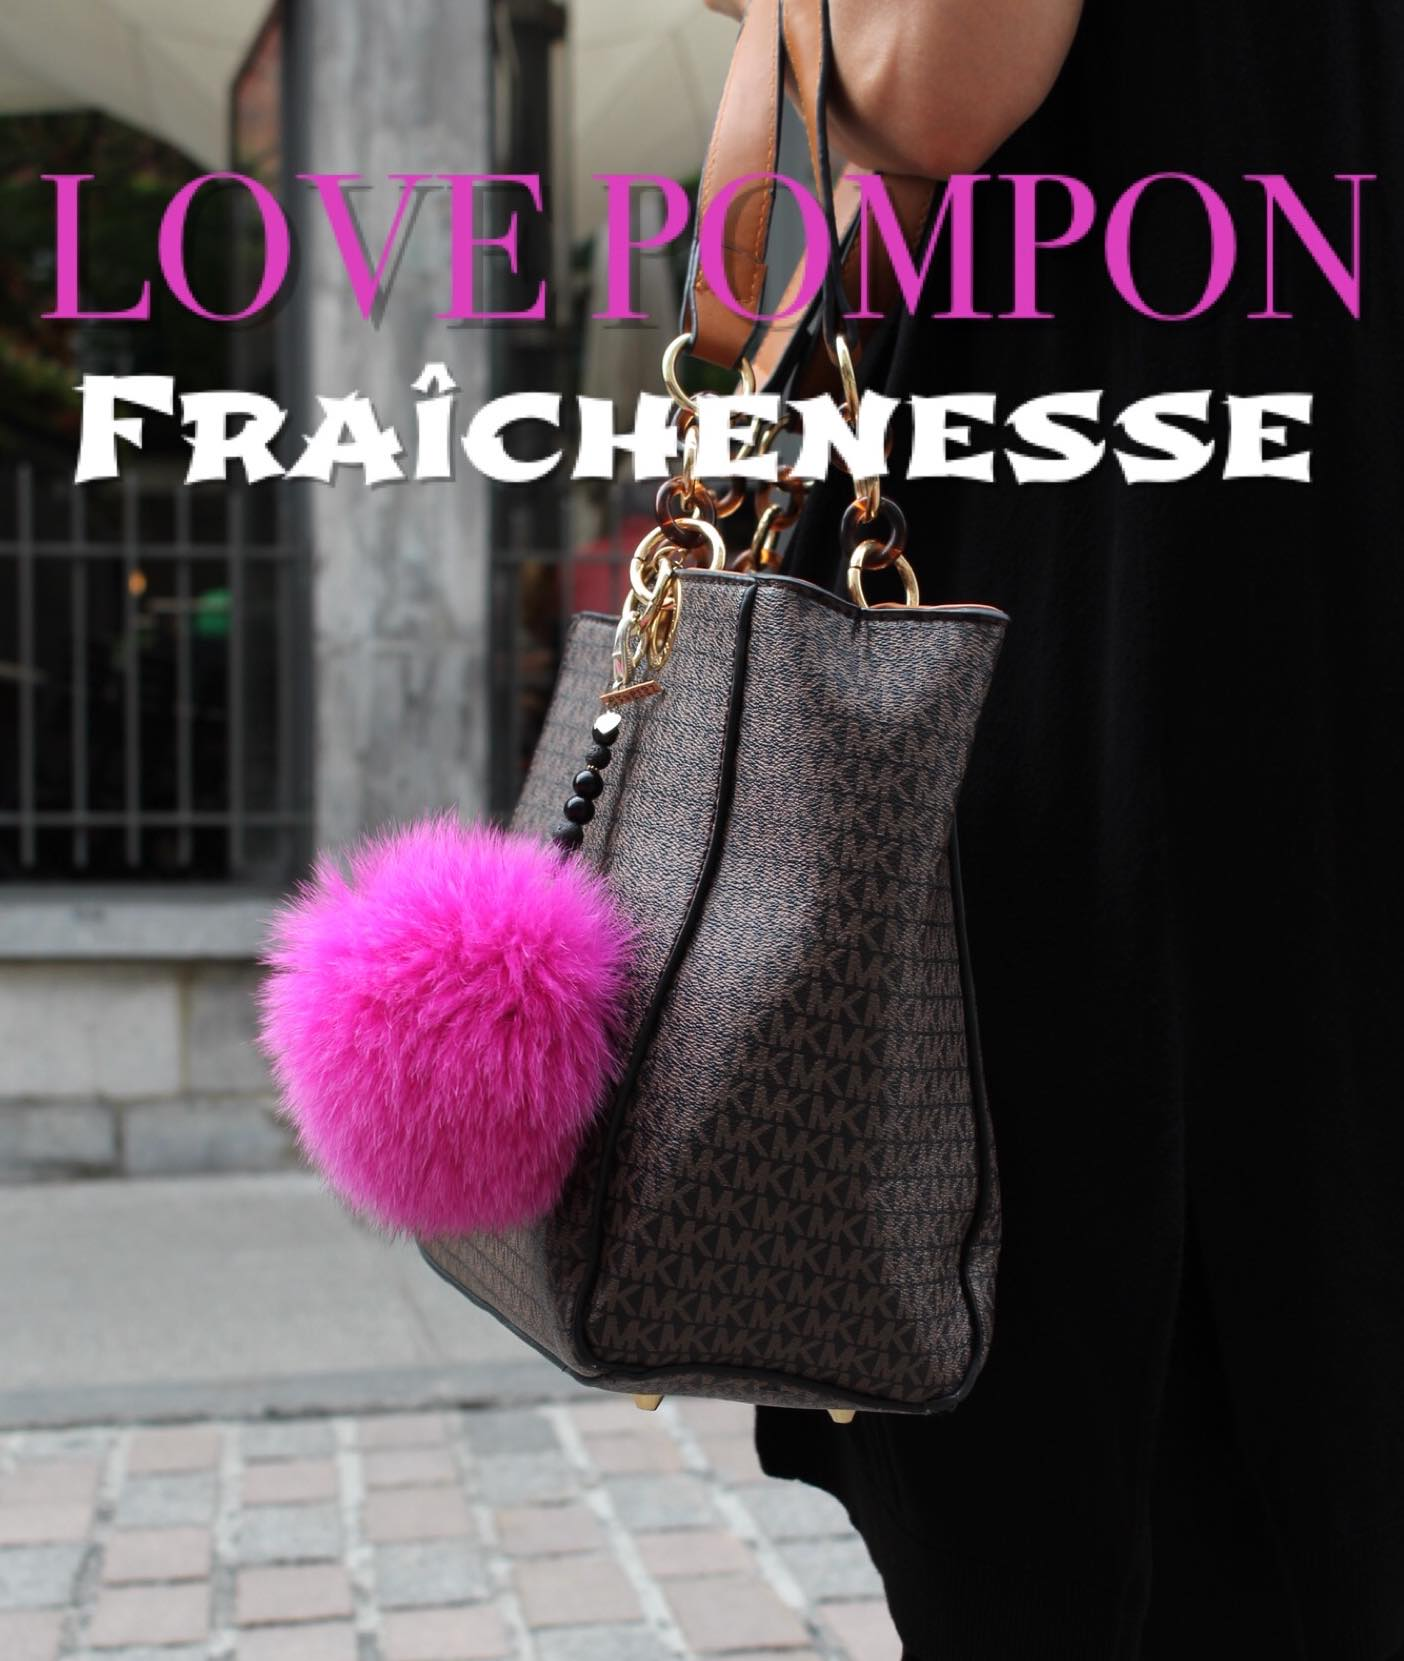 Fashion Hand Bag  | Love Pompon